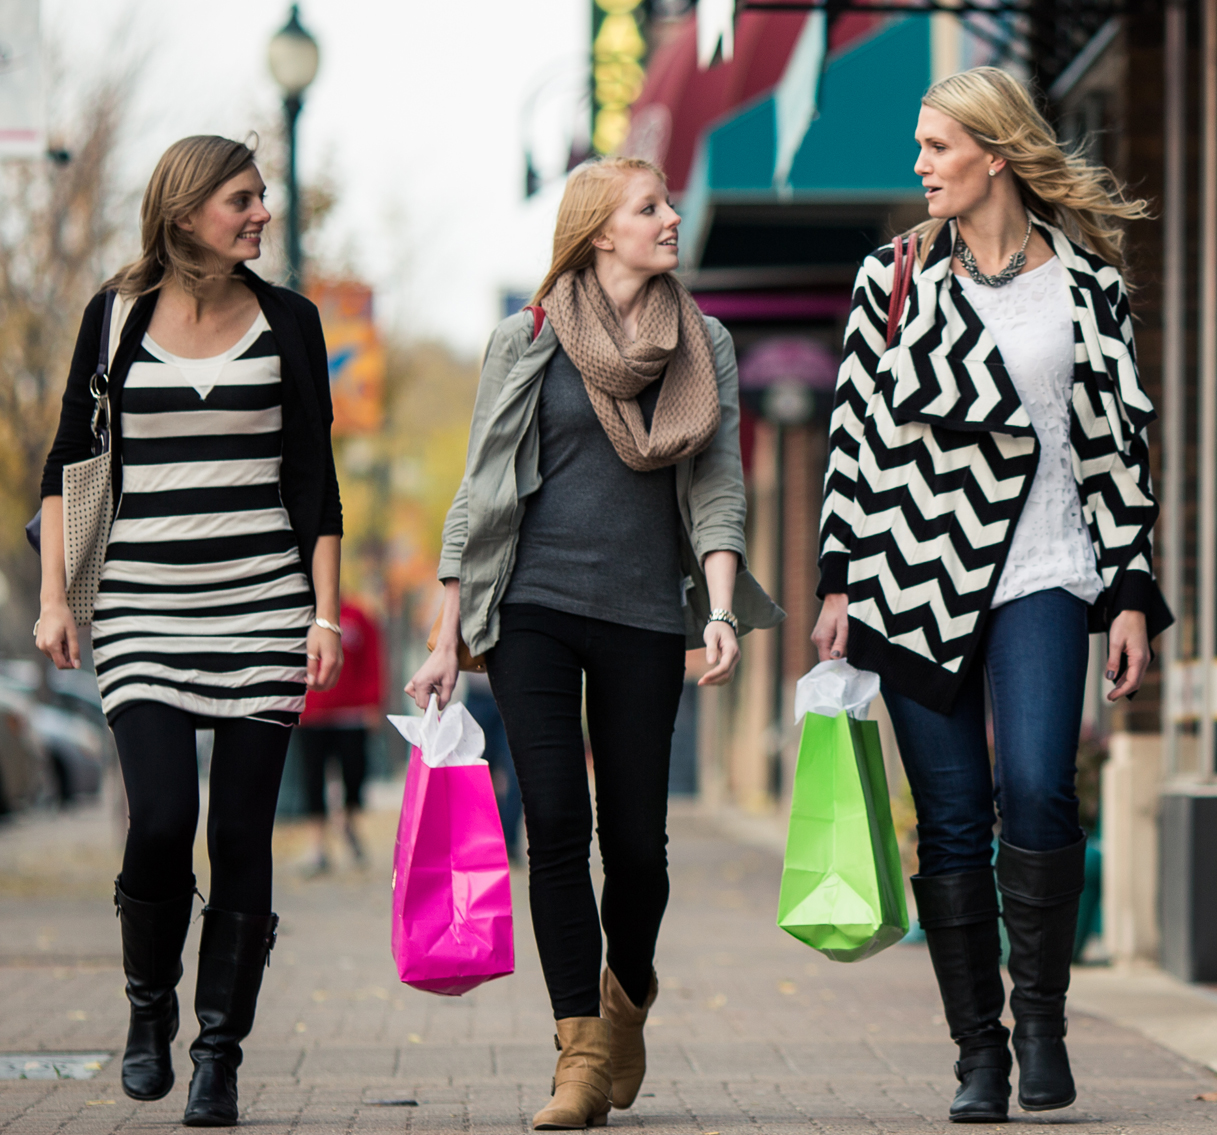 Hop Downtown for the Fall Shop Hop!